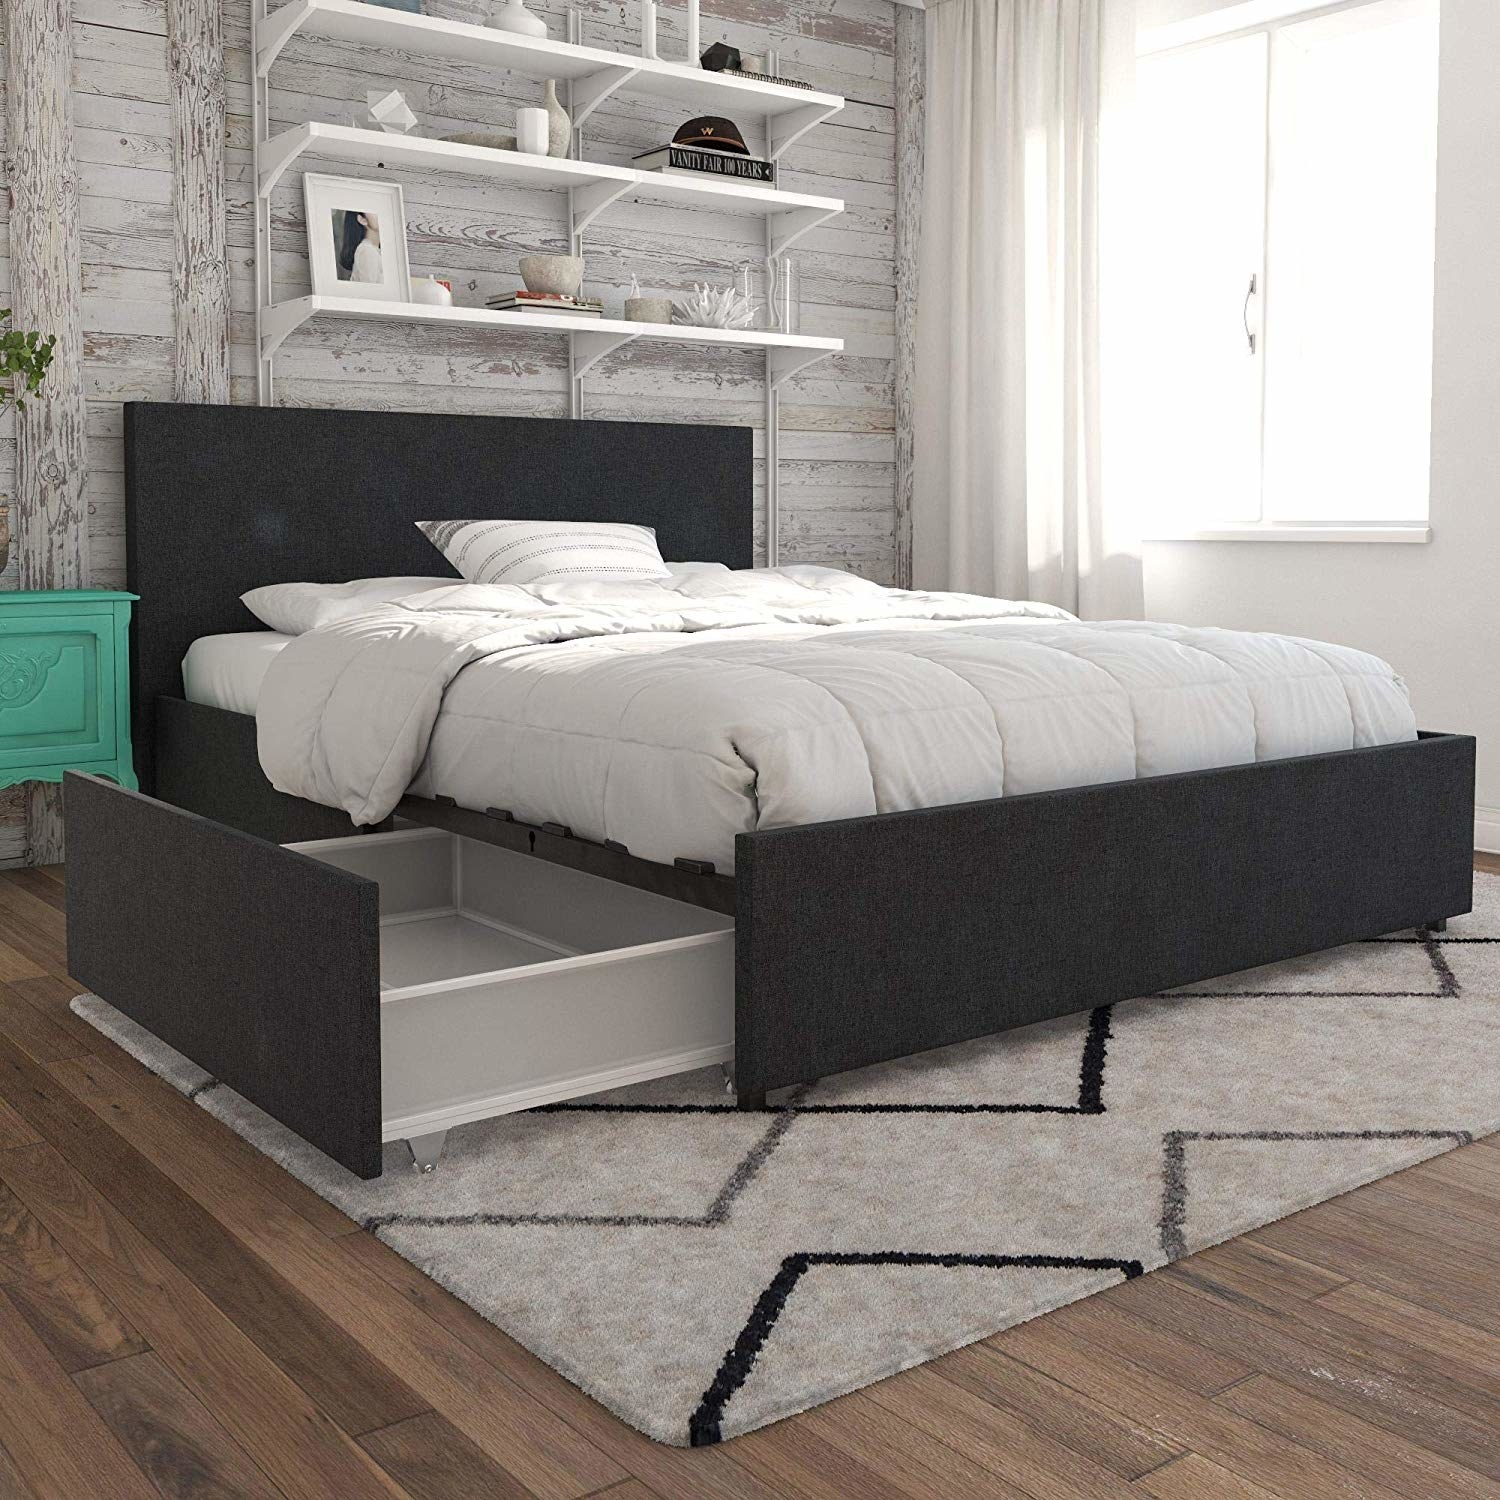 The bed frame in dark grey with one of the drawers on the side pulled out, showing the size.